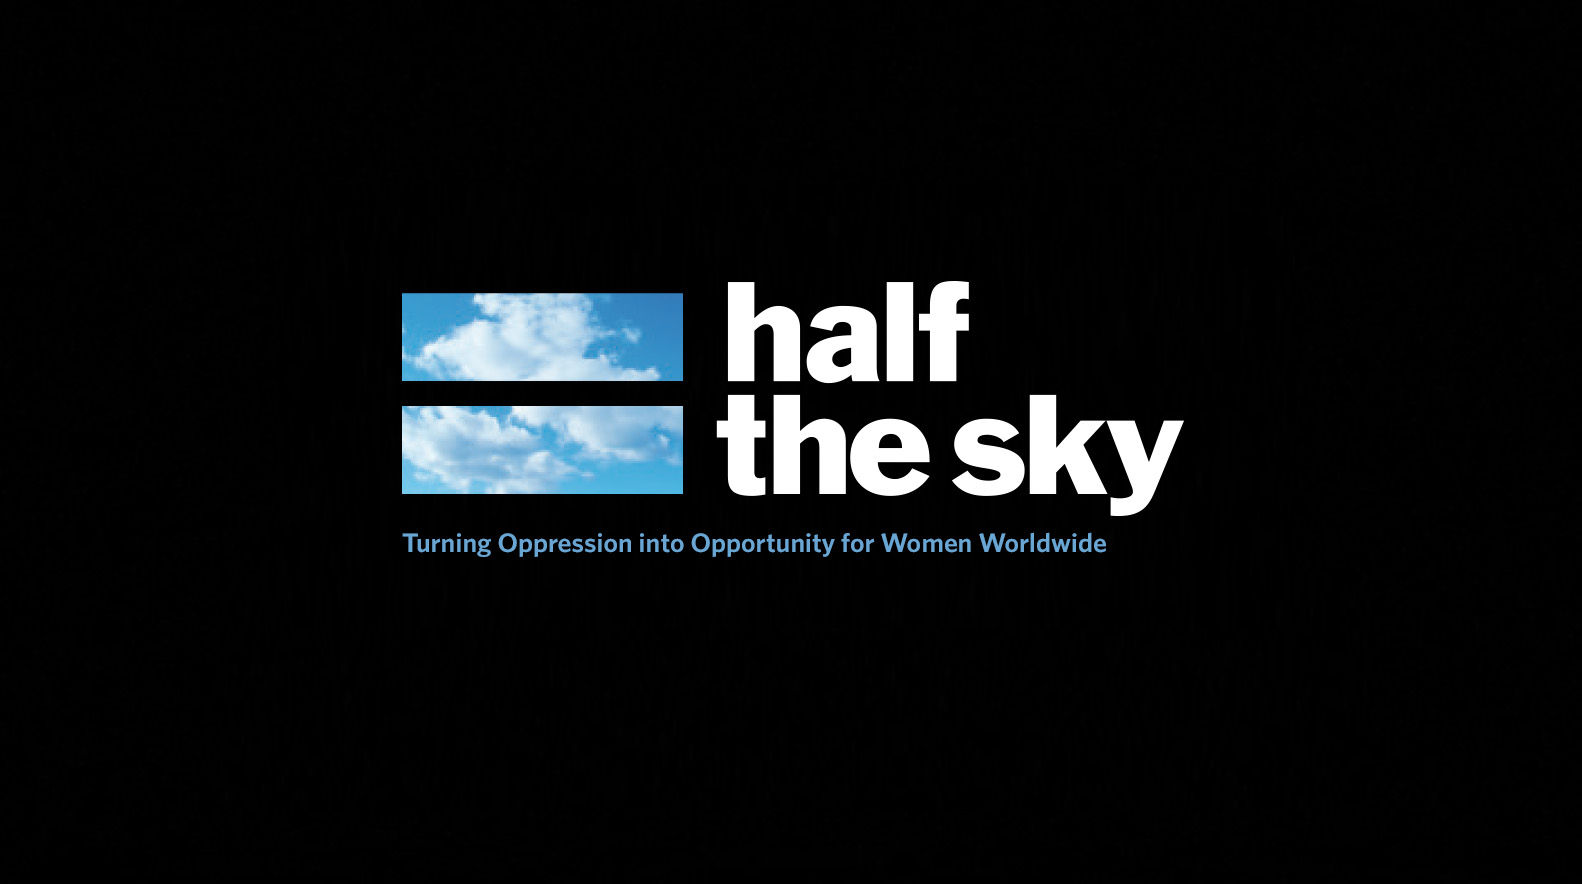 half_the_sky-logo-over-black.jpg